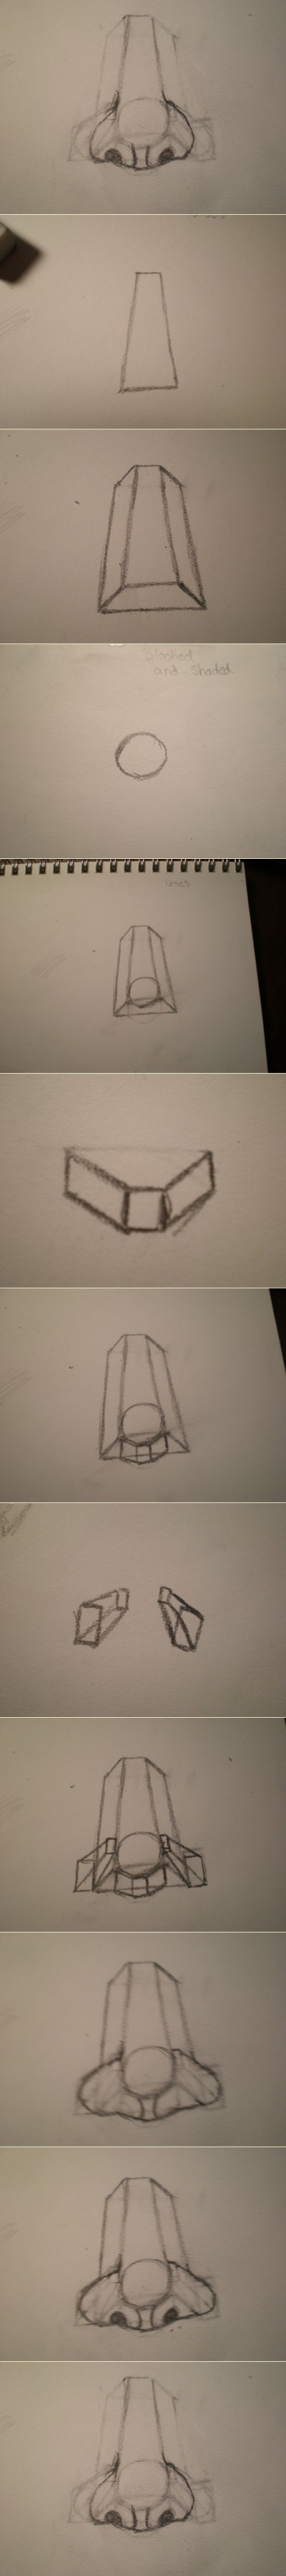 How to draw a nose step by step DIY instructions